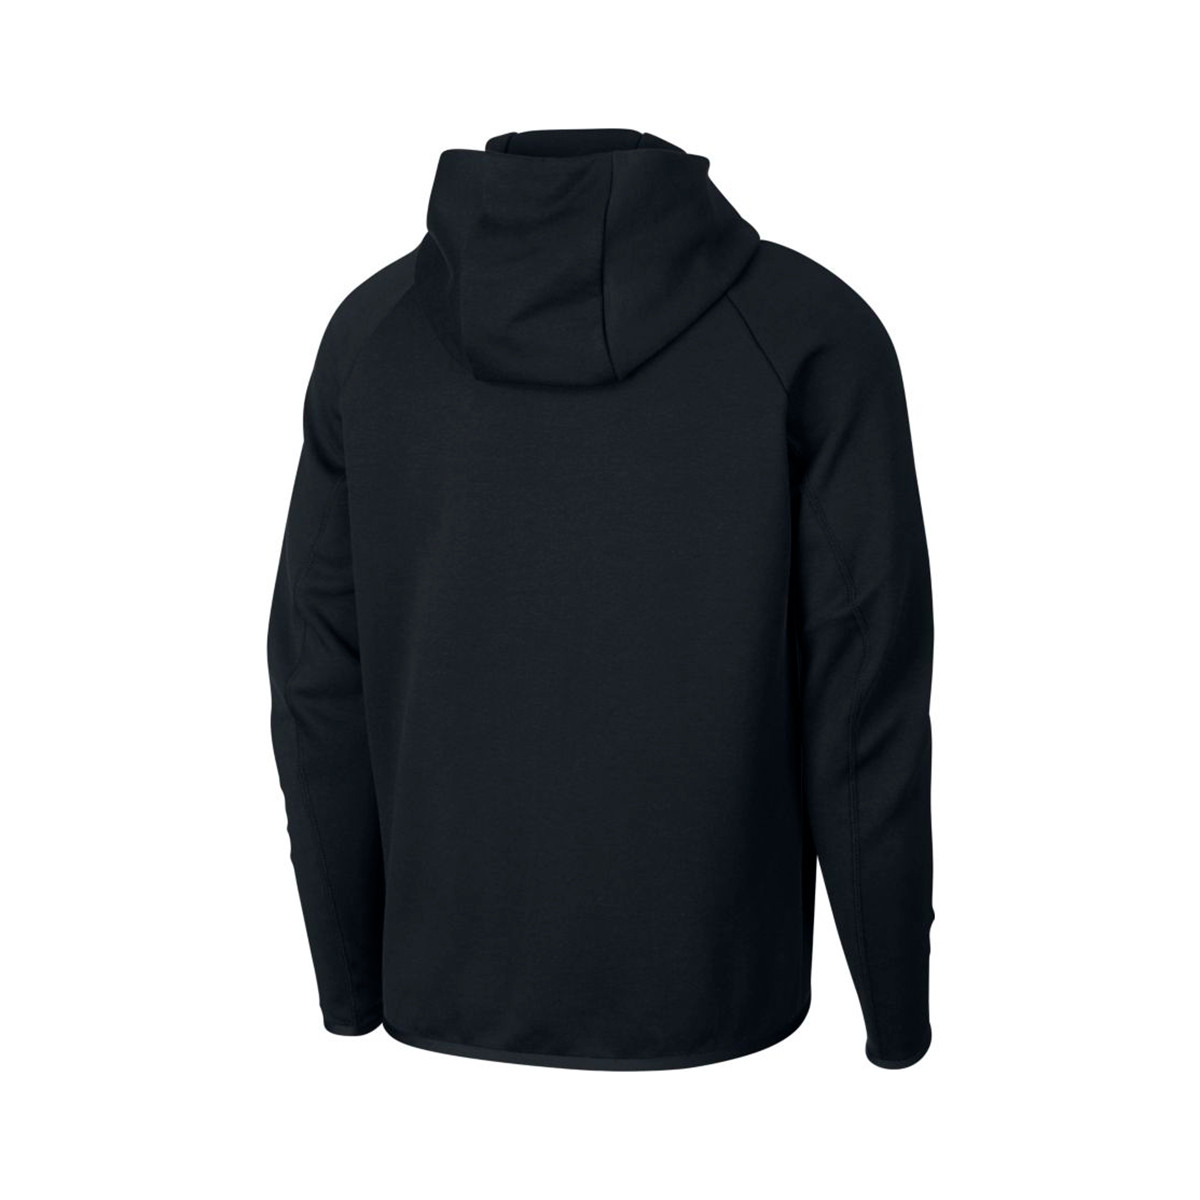 Aleta Joven concepto  Sweatshirt Nike Sportswear Tech Fleece Hoodie Black - Football store Fútbol  Emotion